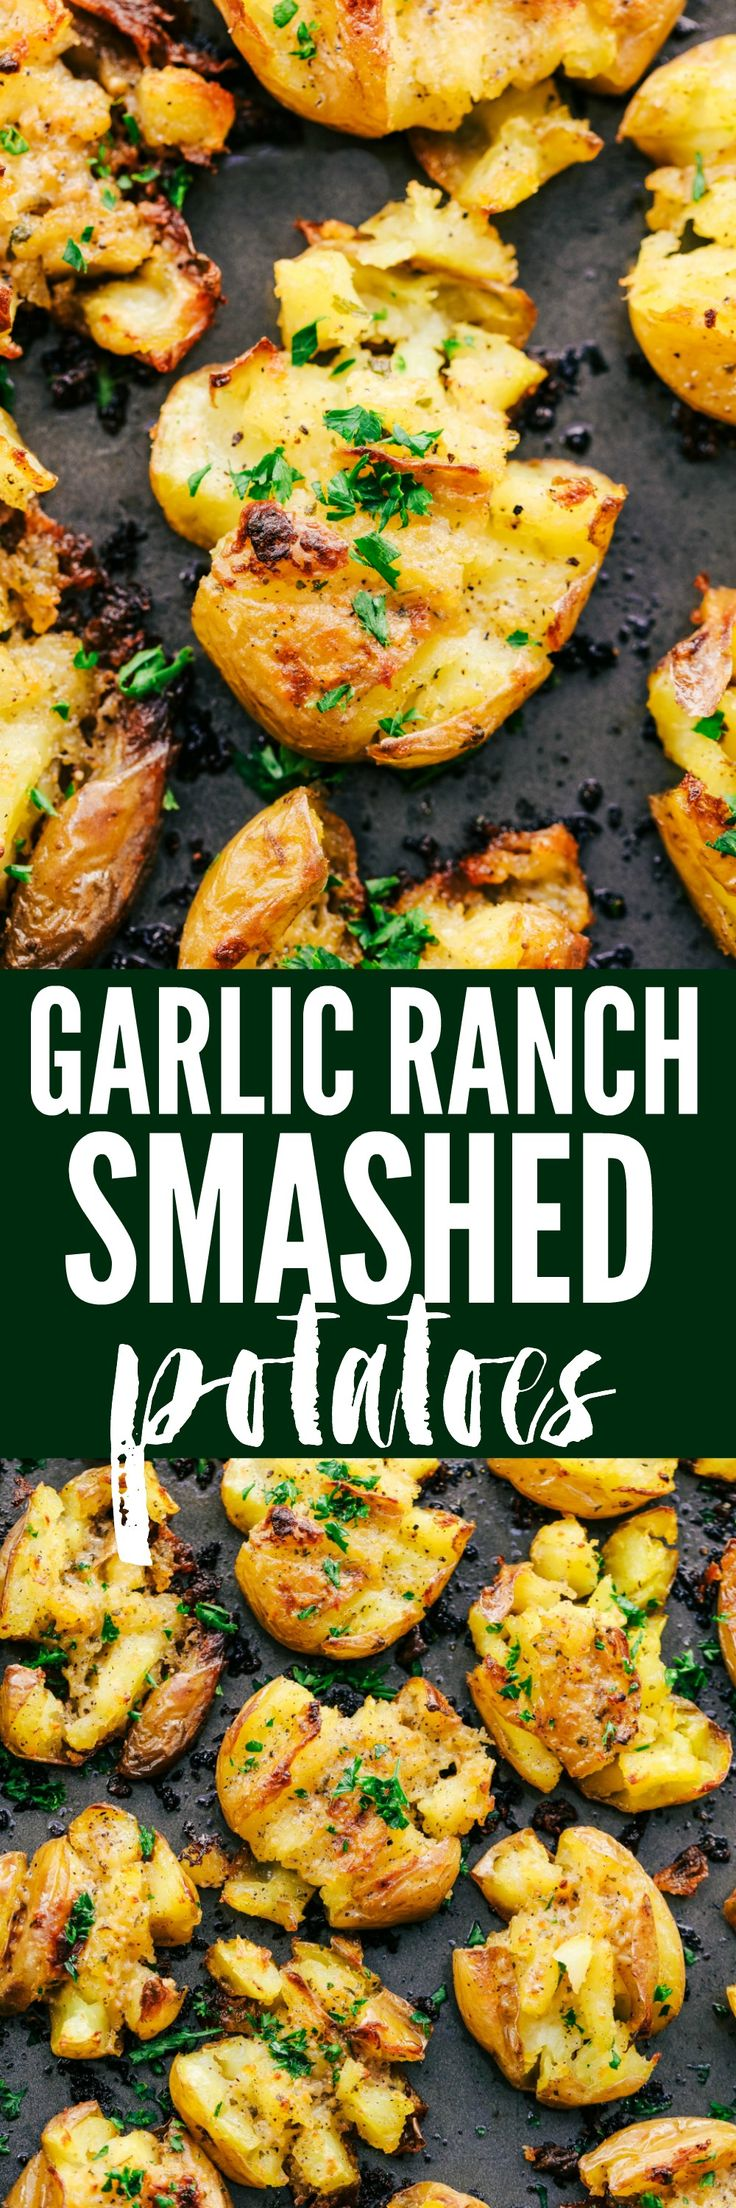 Garlic Ranch Smashed Potatoes are crispy on the outside and tender on the inside with the most incredible garlic ranch flavor!  These make the perfect side dish or appetizer.